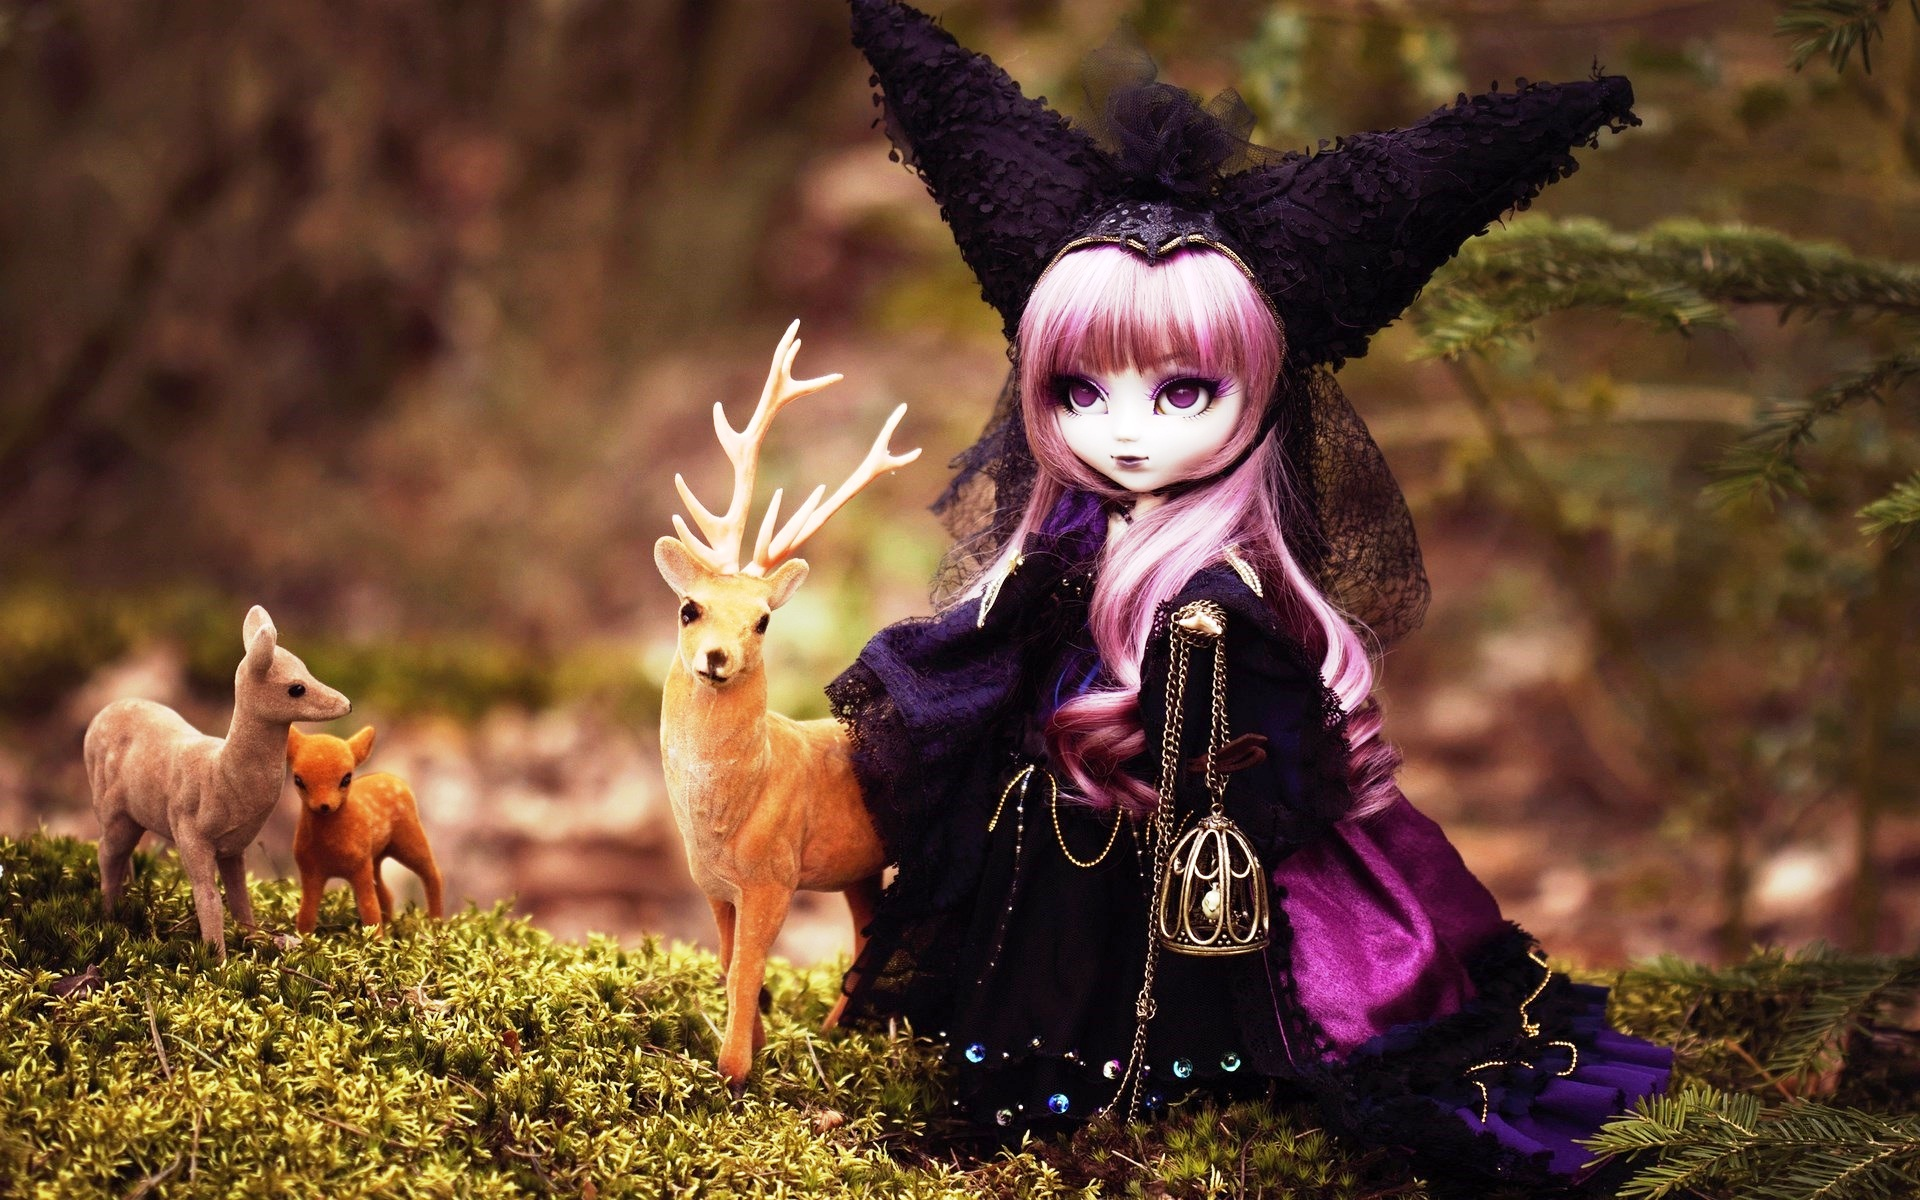 Cute and sweet doll new wallpapers   New hd wallpaperNew 1920x1200